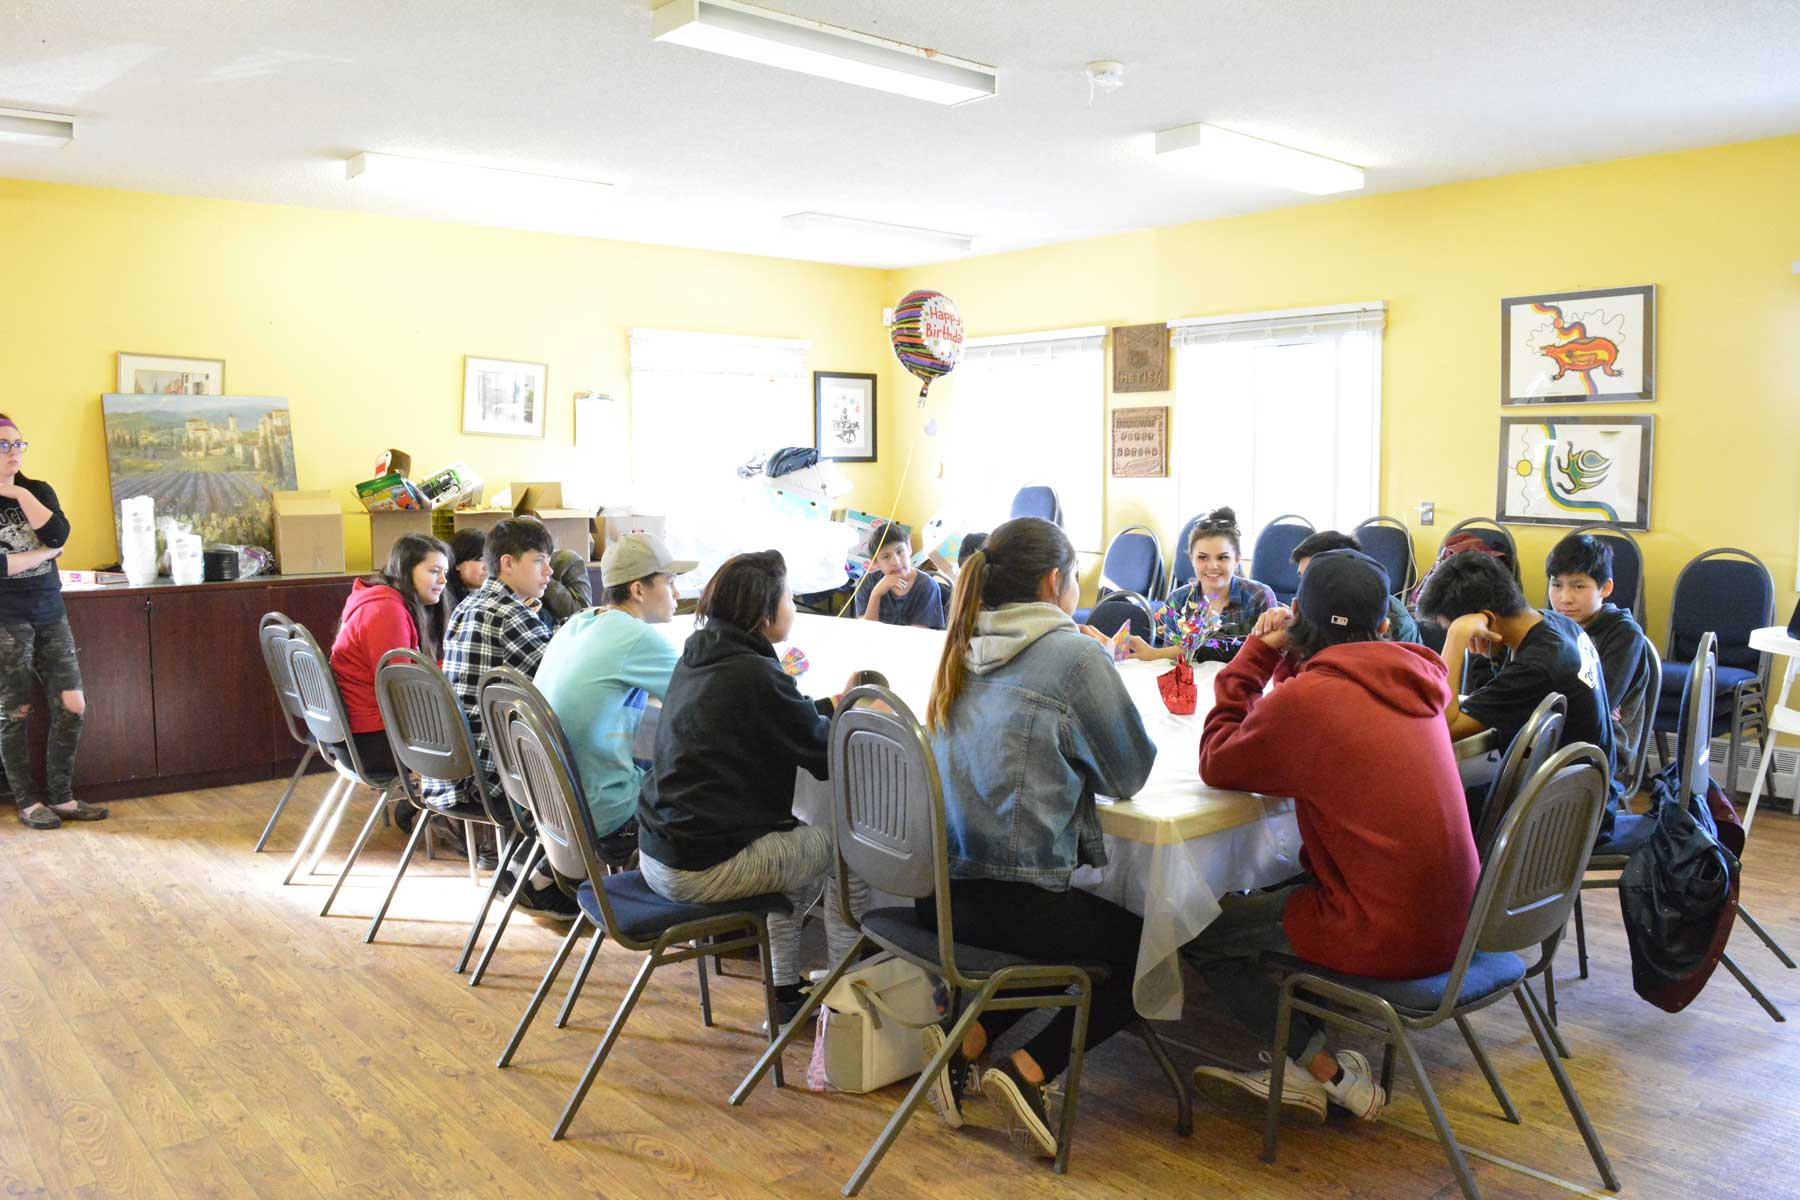 Youth from the ASP program celebrate their instructor Rene's birthday